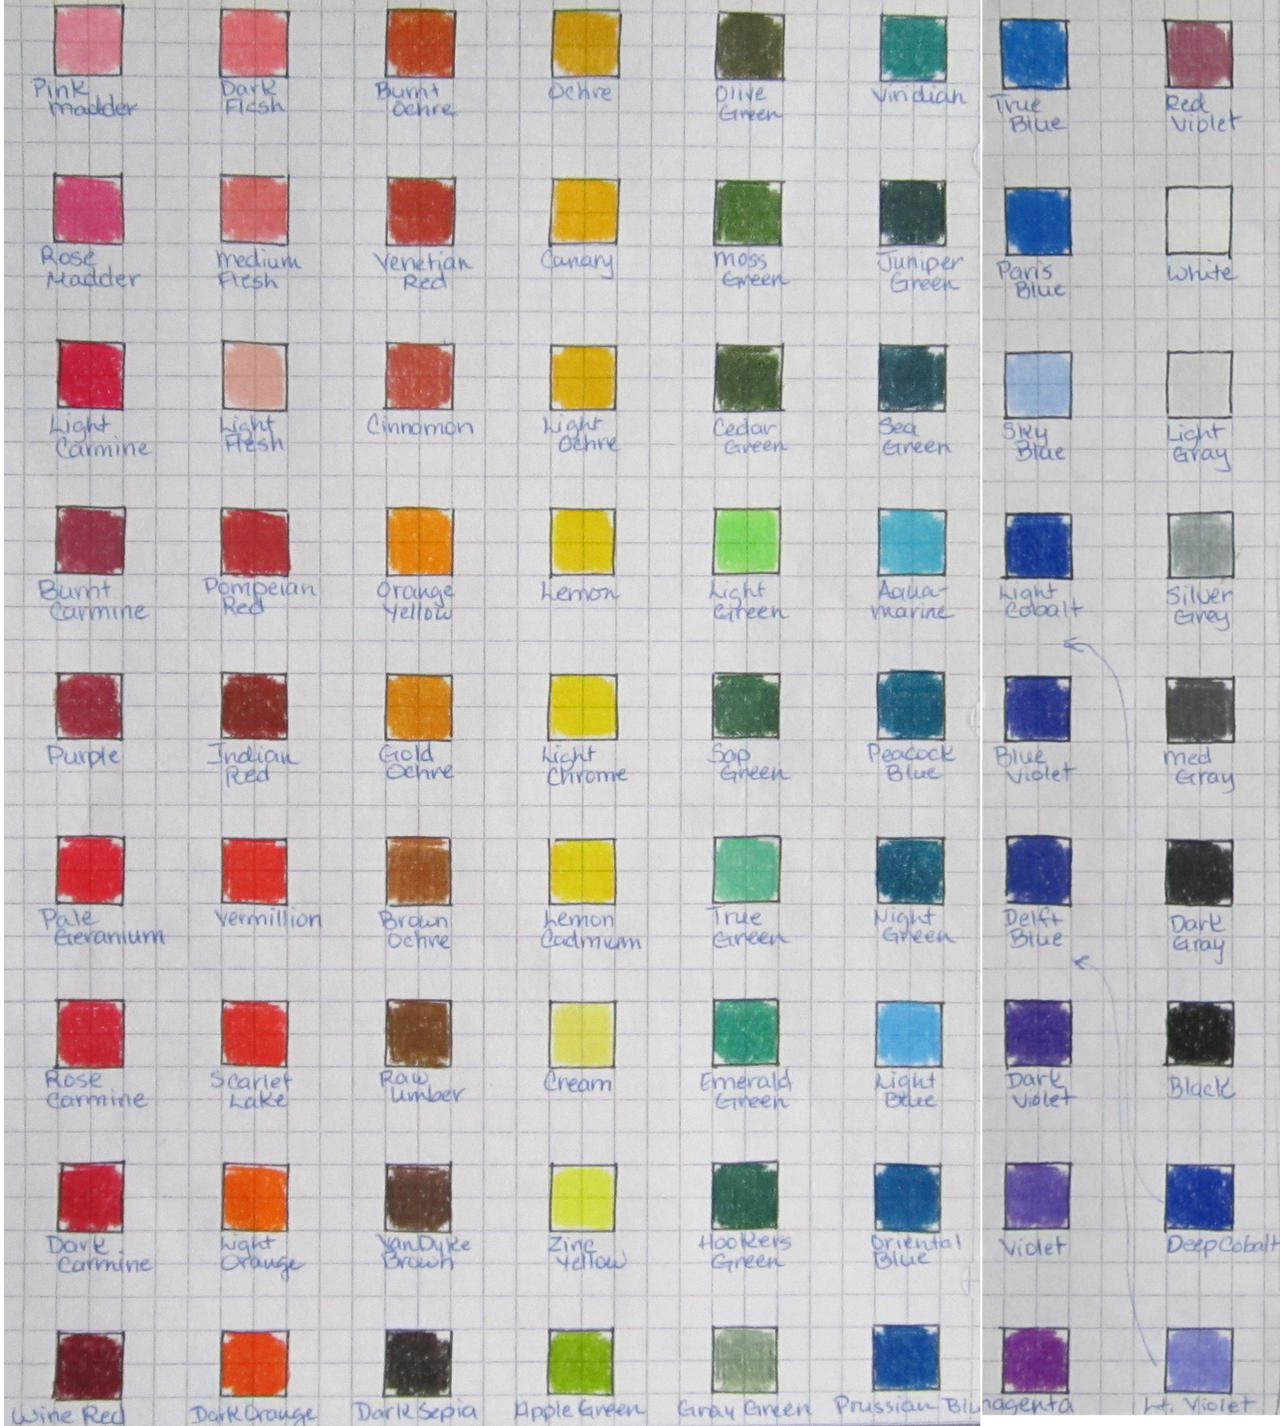 Color charts for color pencils by josephine9606 on deviantart josephine9606 0 0 lyra rembrandt polycolor color chart by josephine9606 nvjuhfo Image collections